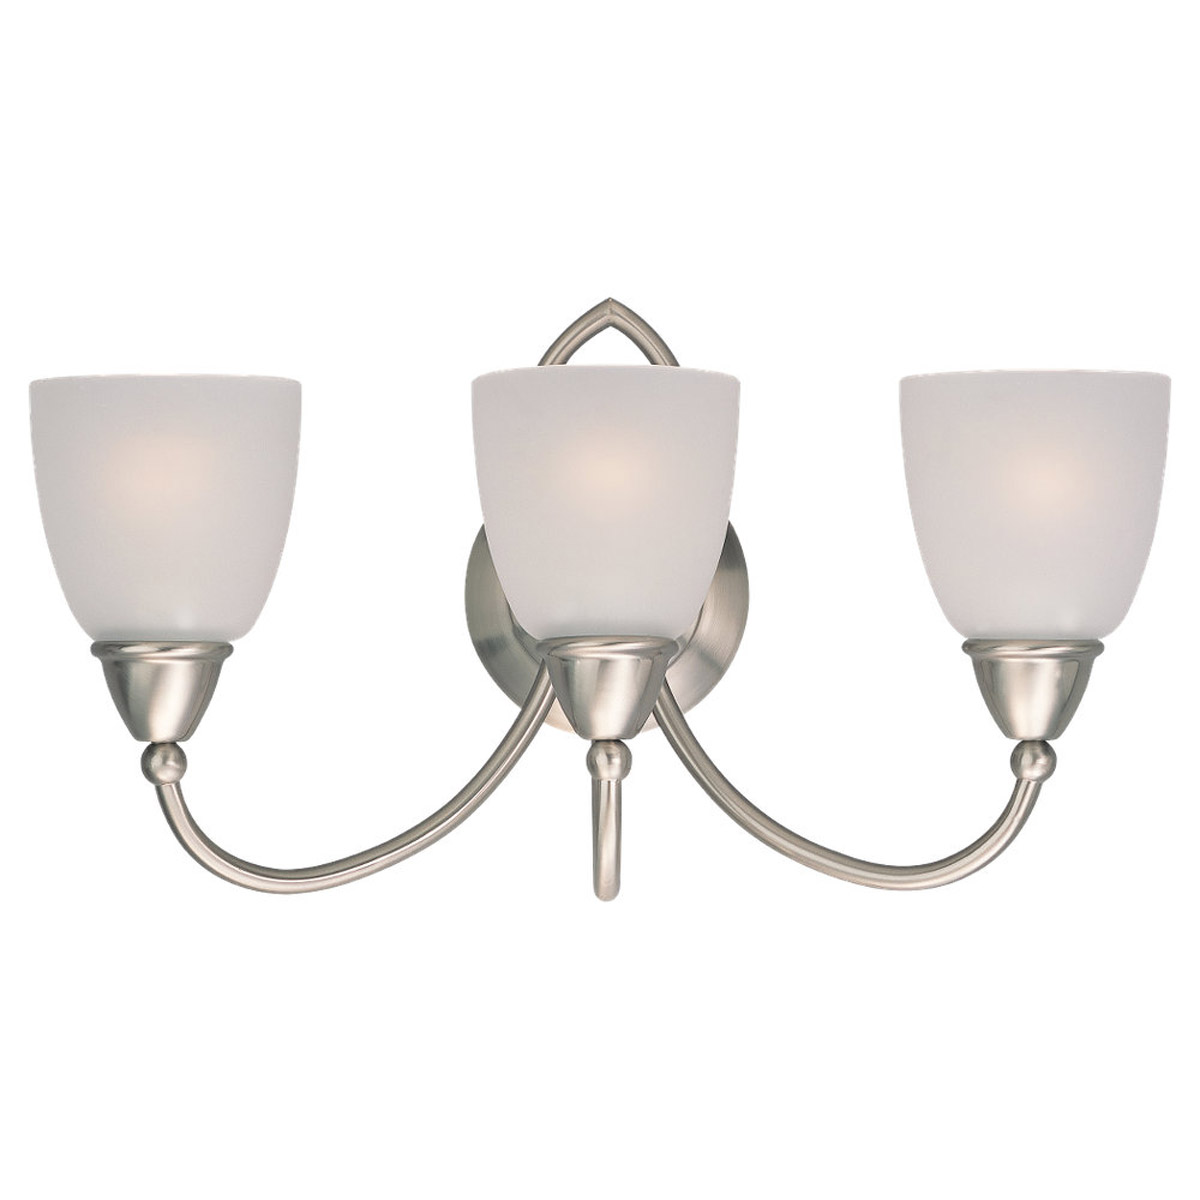 Sea Gull Lighting Pemberton 3 Light Bath Vanity in Brushed Nickel 40075-962 photo